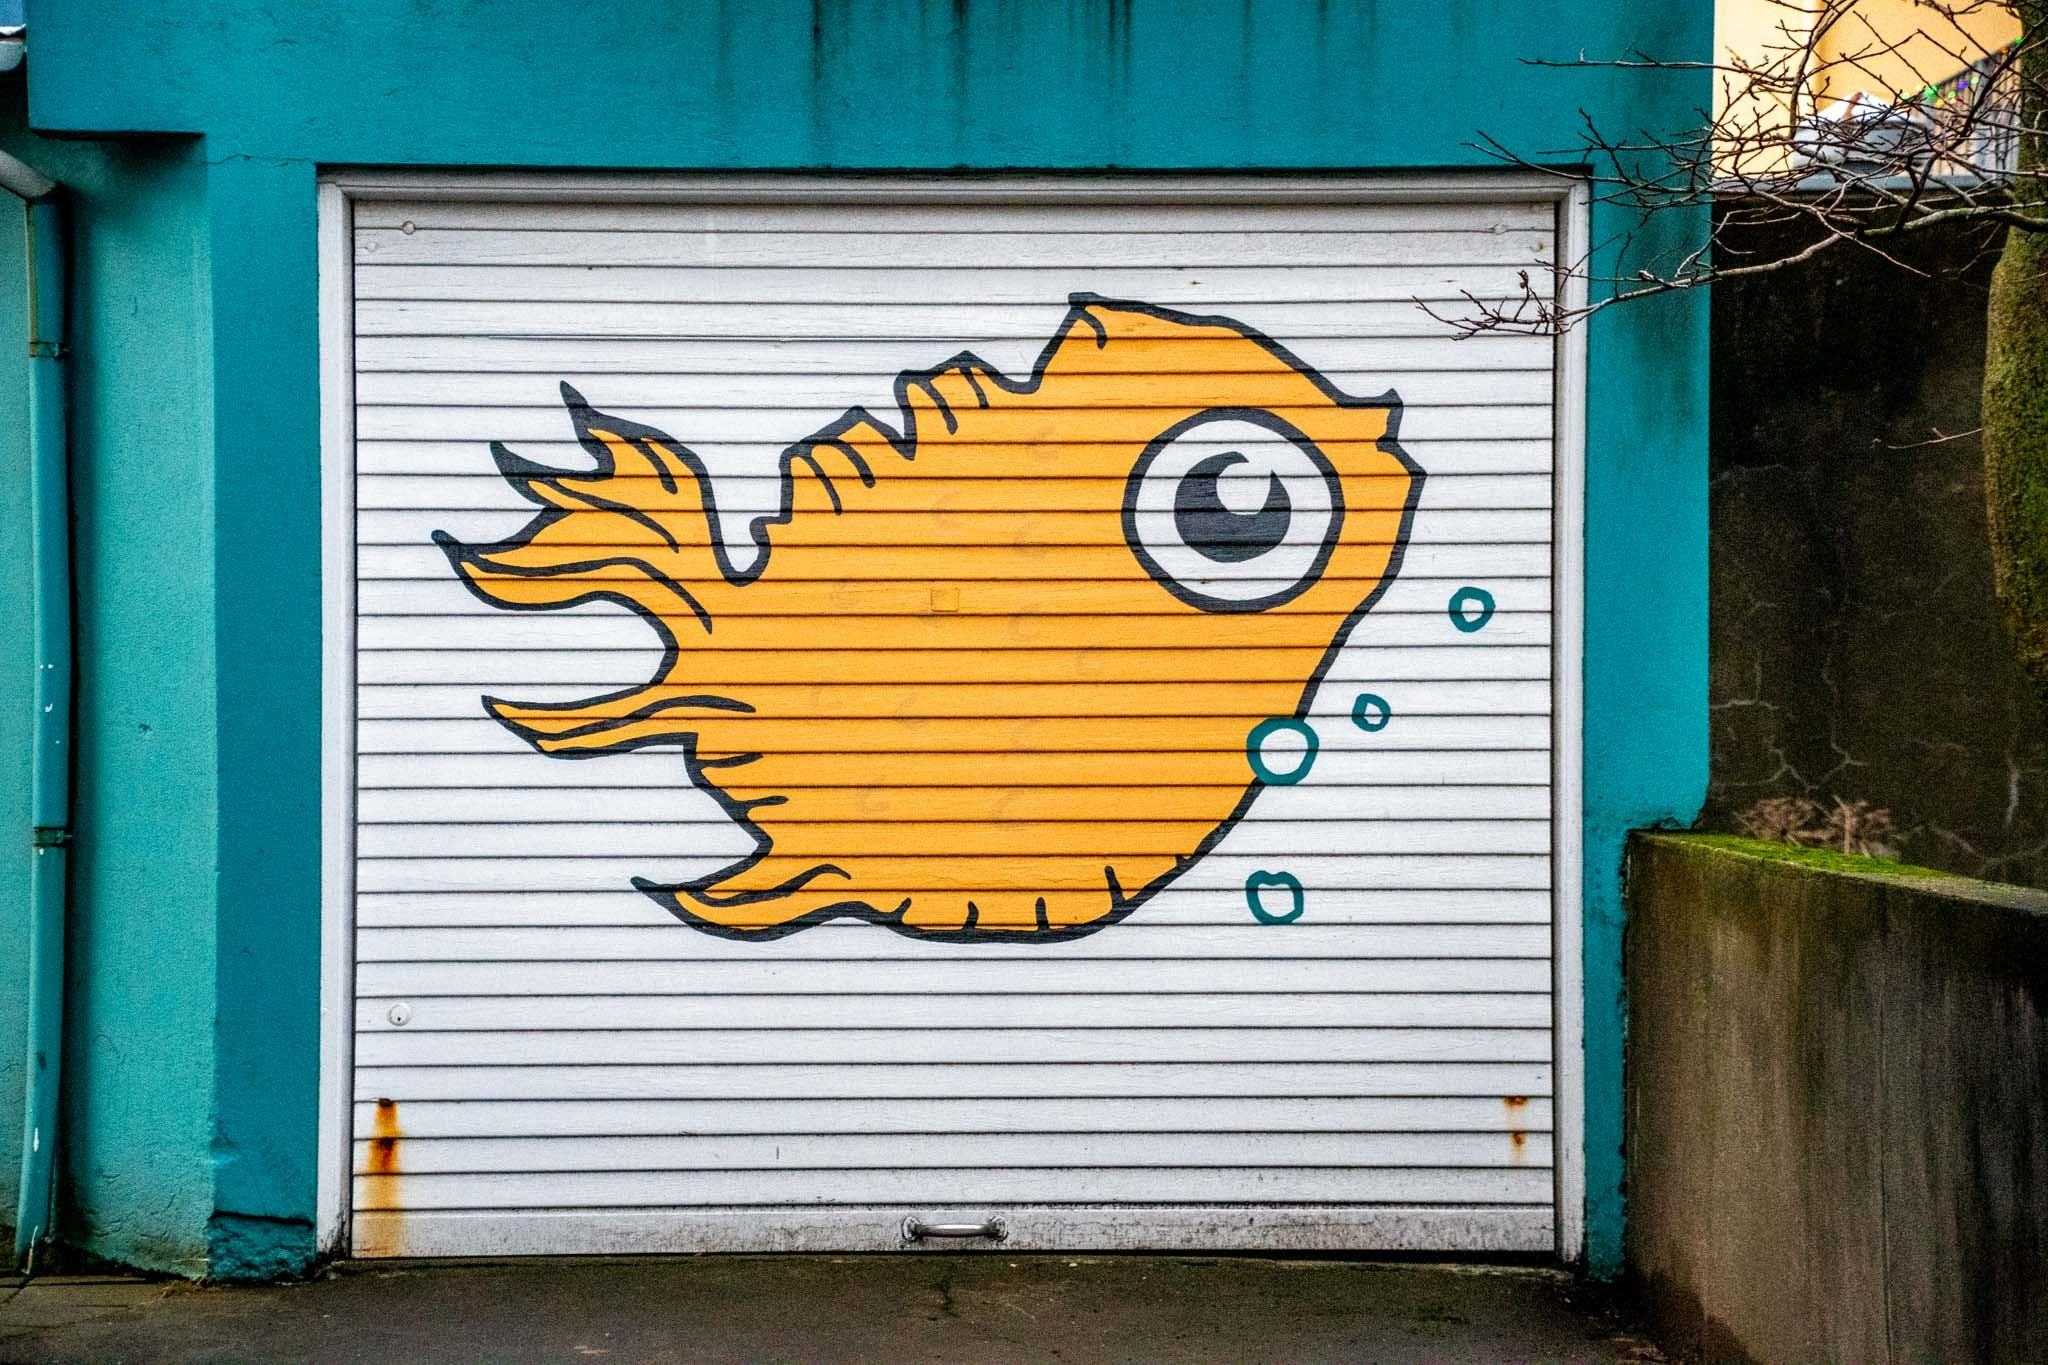 Fish mural in the shape of Iceland on a garage in downtown Reykjavik